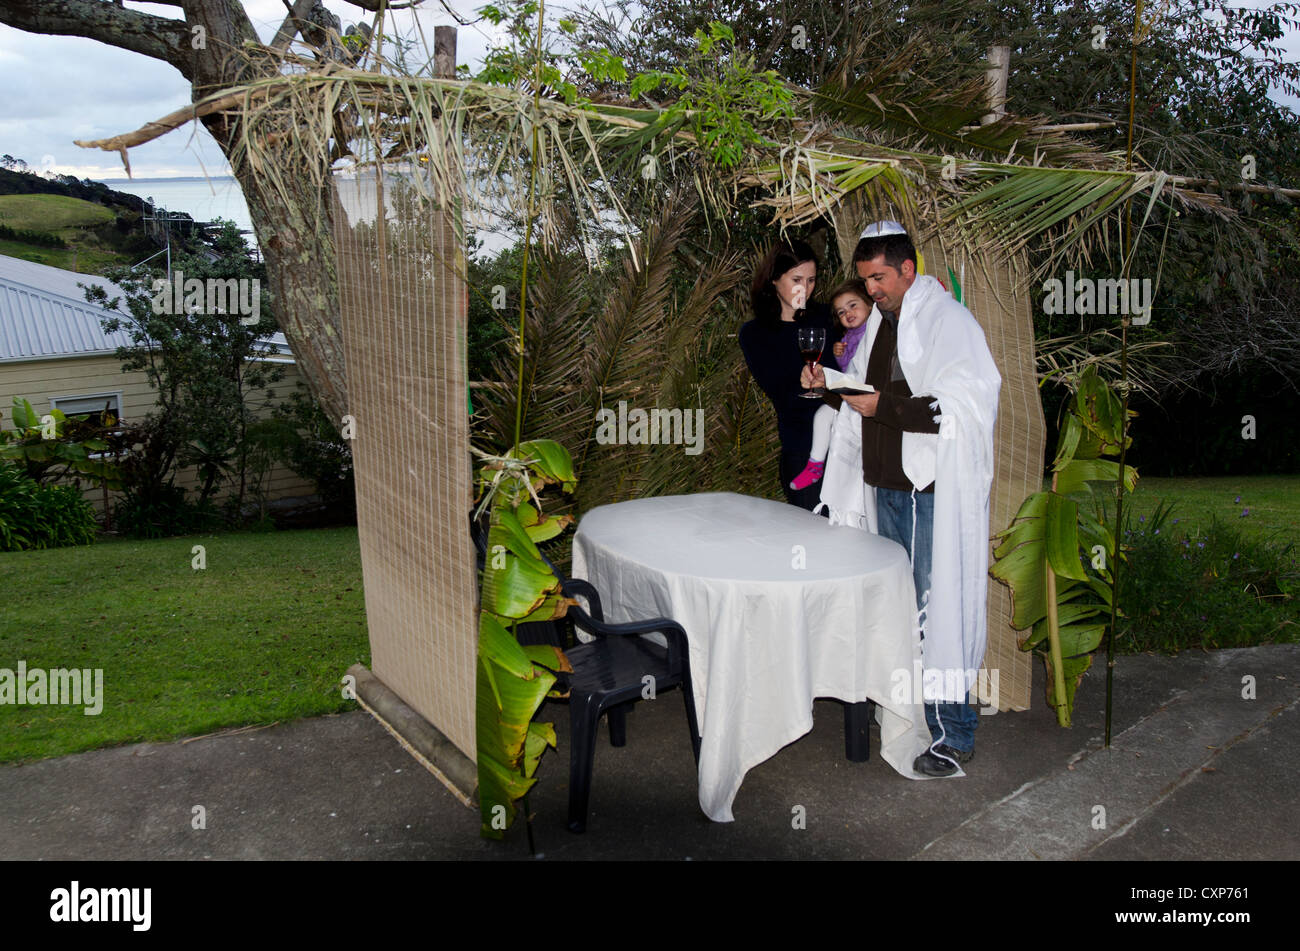 Young Jewish family prays at the Sukkah for the Jewish festival of Sukkot. - Stock Image